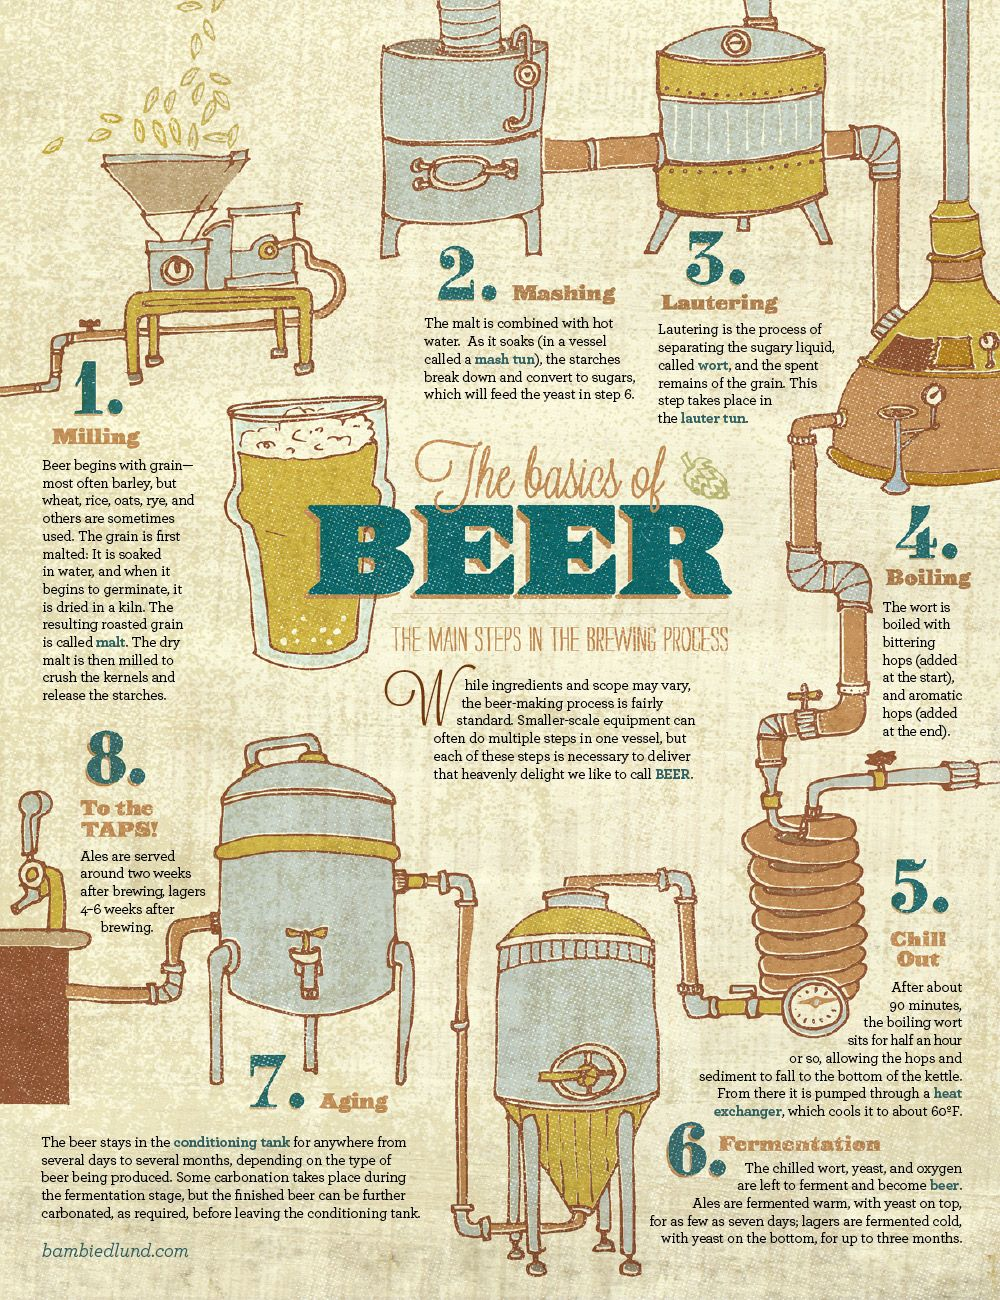 The Basics of Beer  http://bambiedlund.com/illustrations/the-basics-of-beer-4/